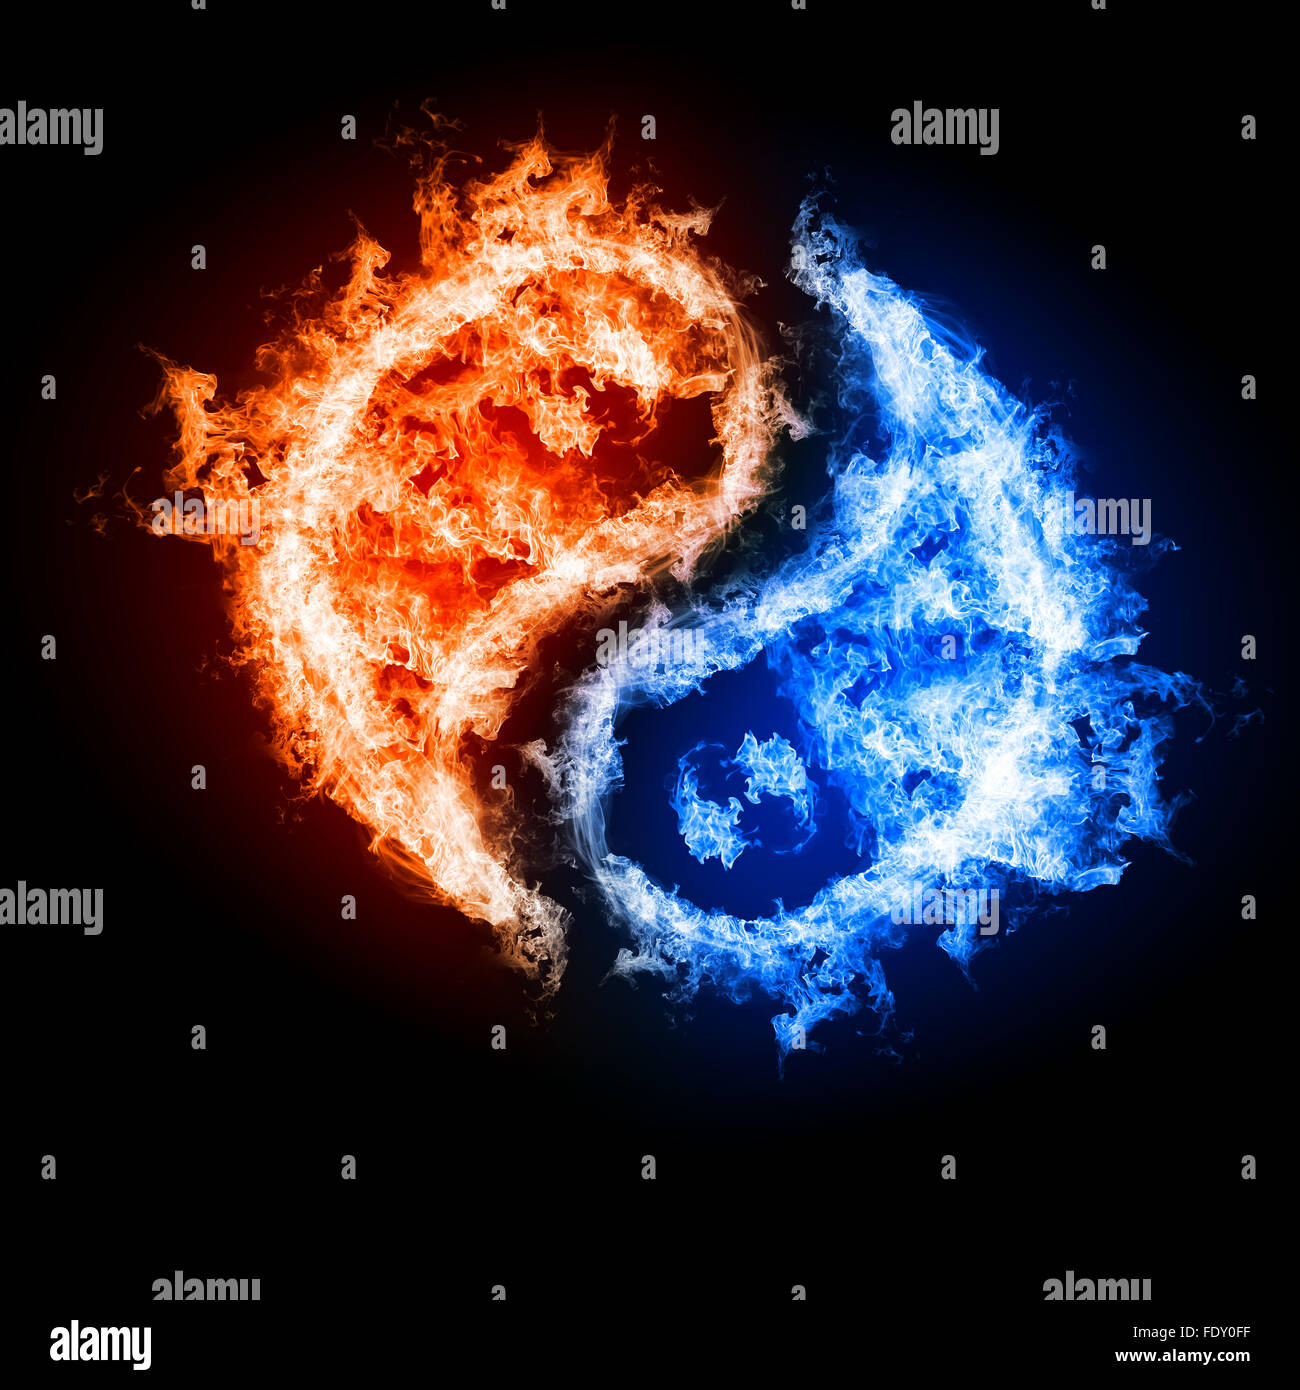 Symbol Of Yin And Yang Of The Dark Background In The Form Of Fire And Stock Photo Alamy